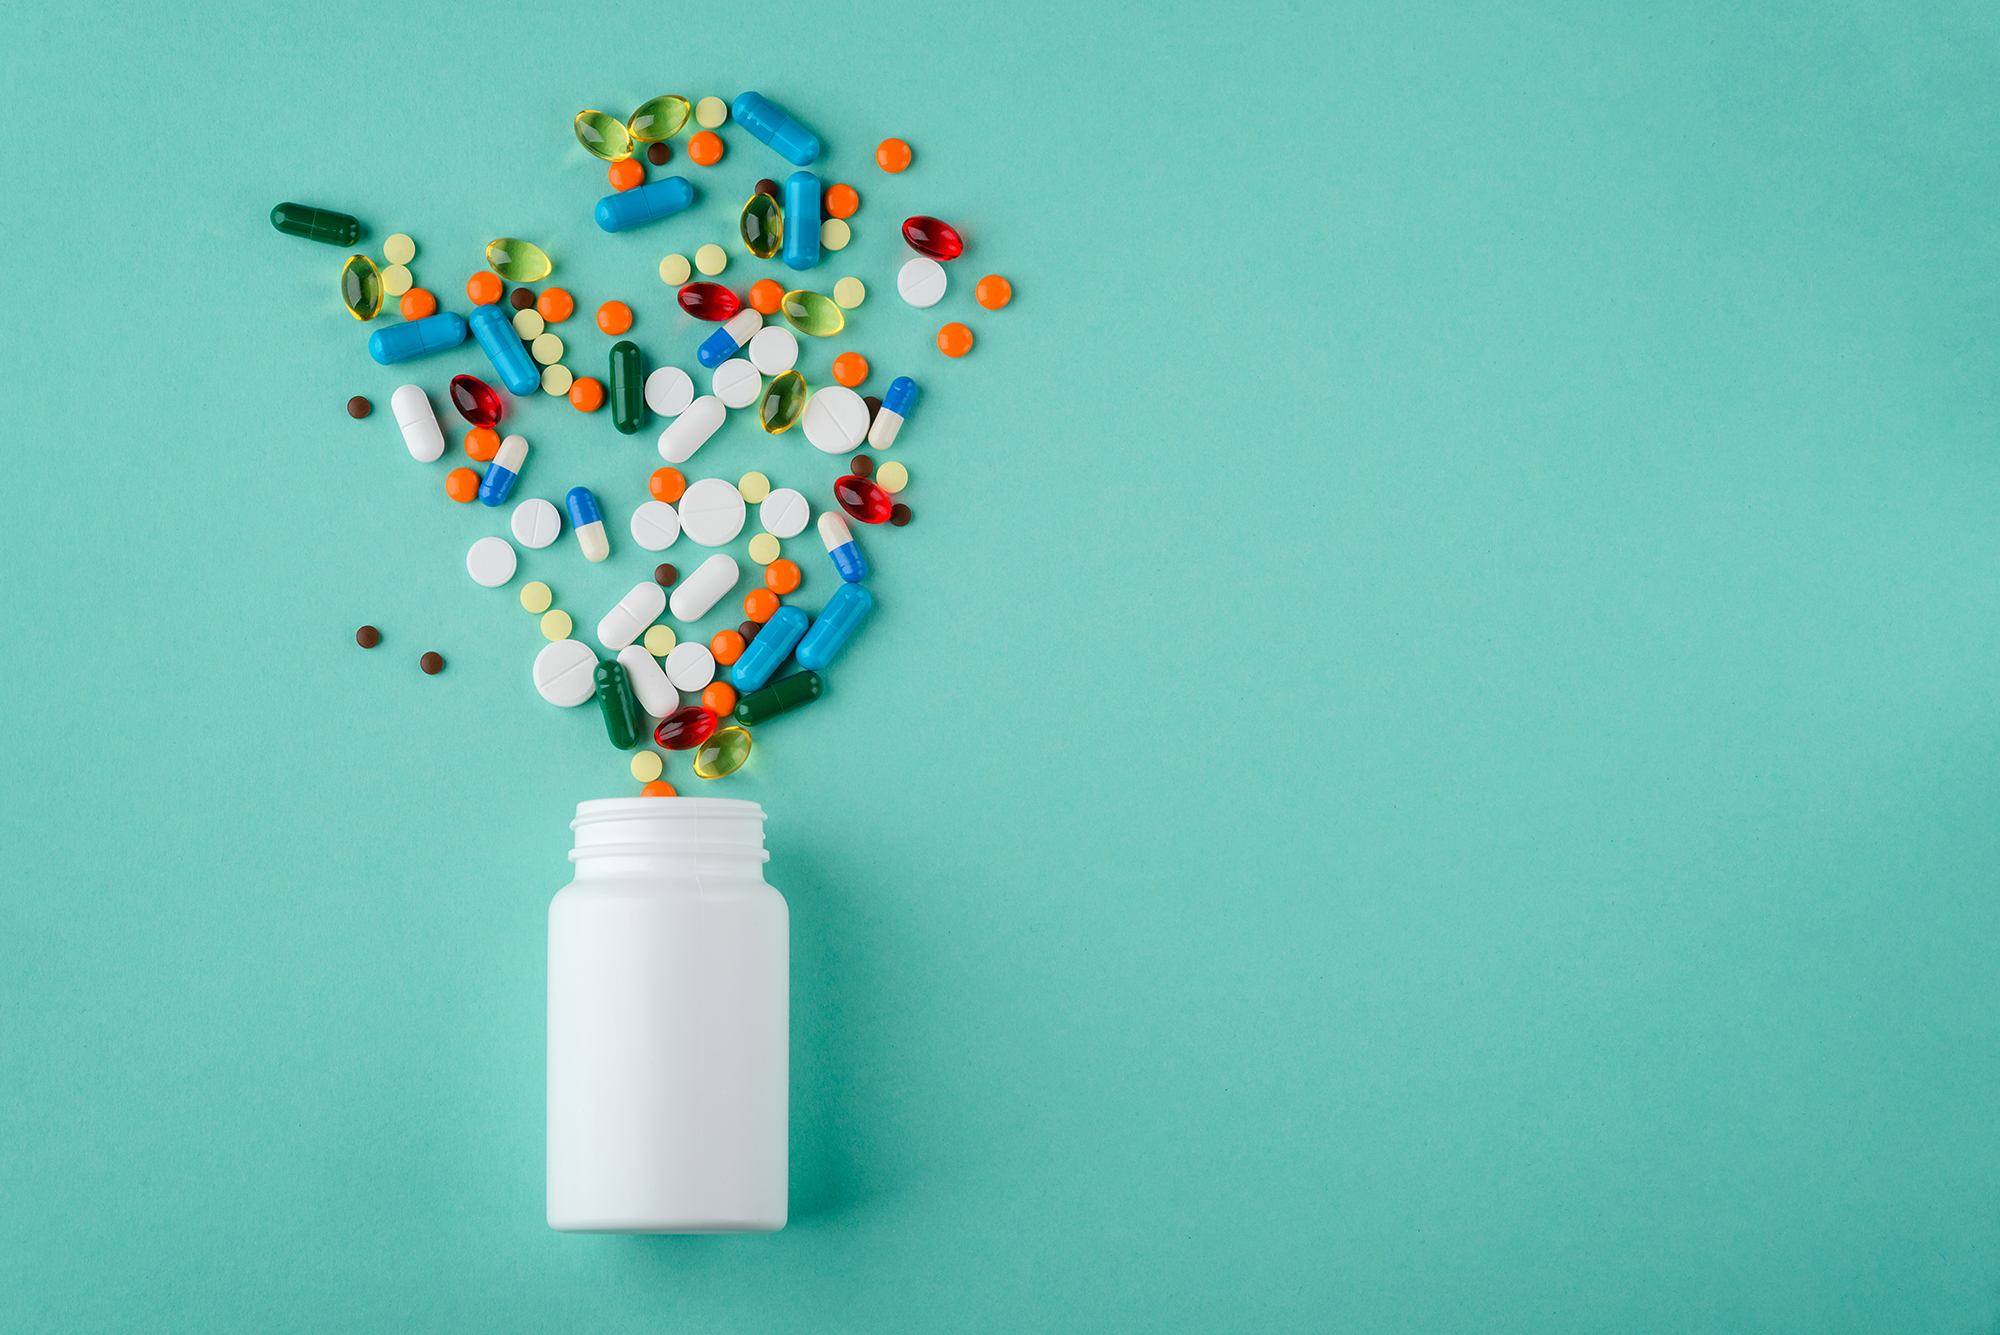 The risks of taking 5 or more different medications